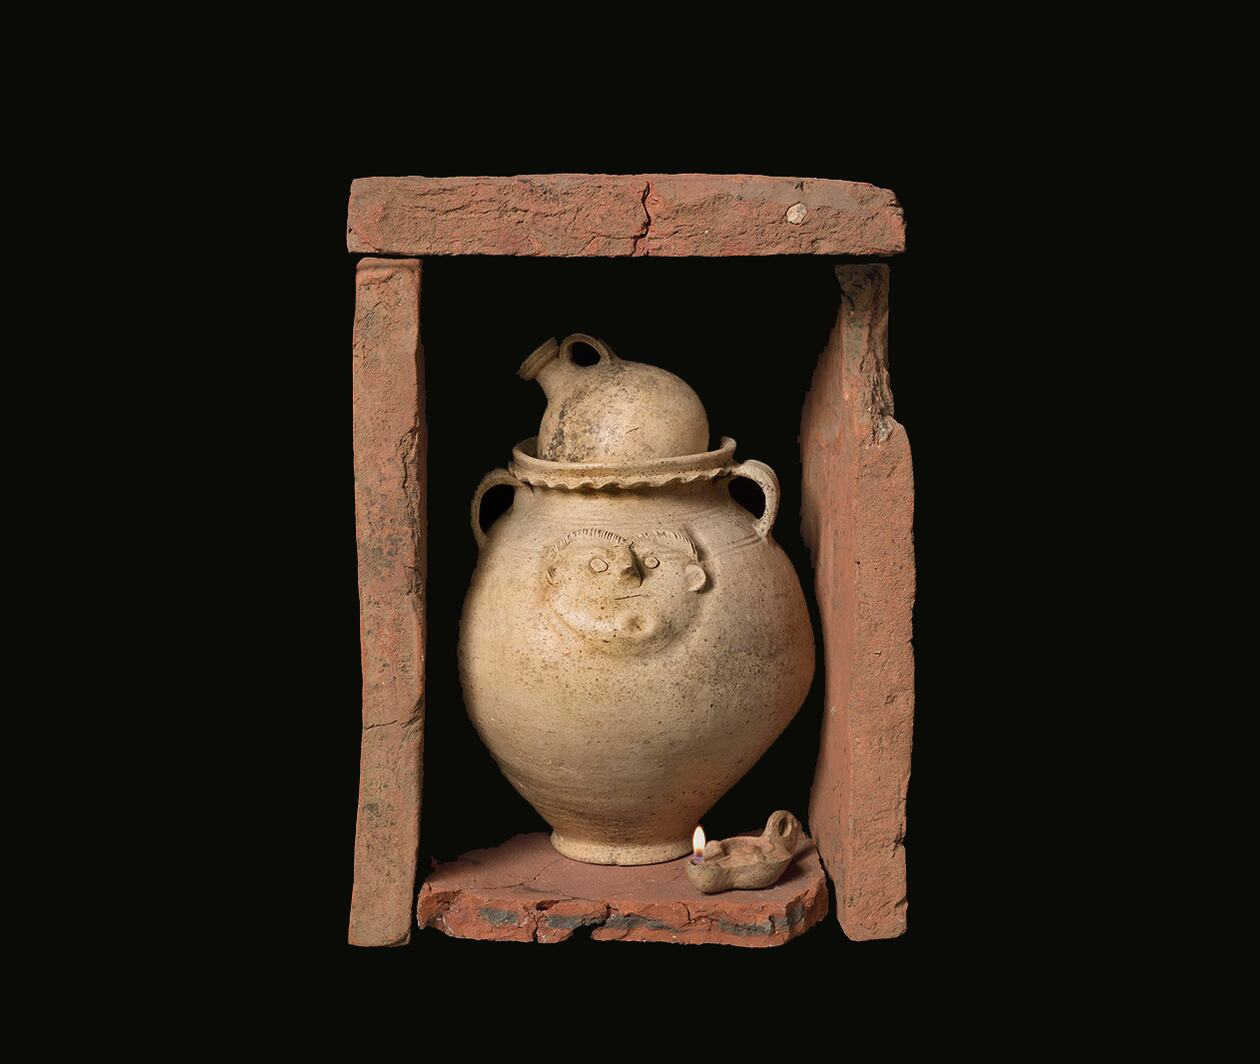 Dead Interesting: Uncovering Roman Britain in Old Museum Collections